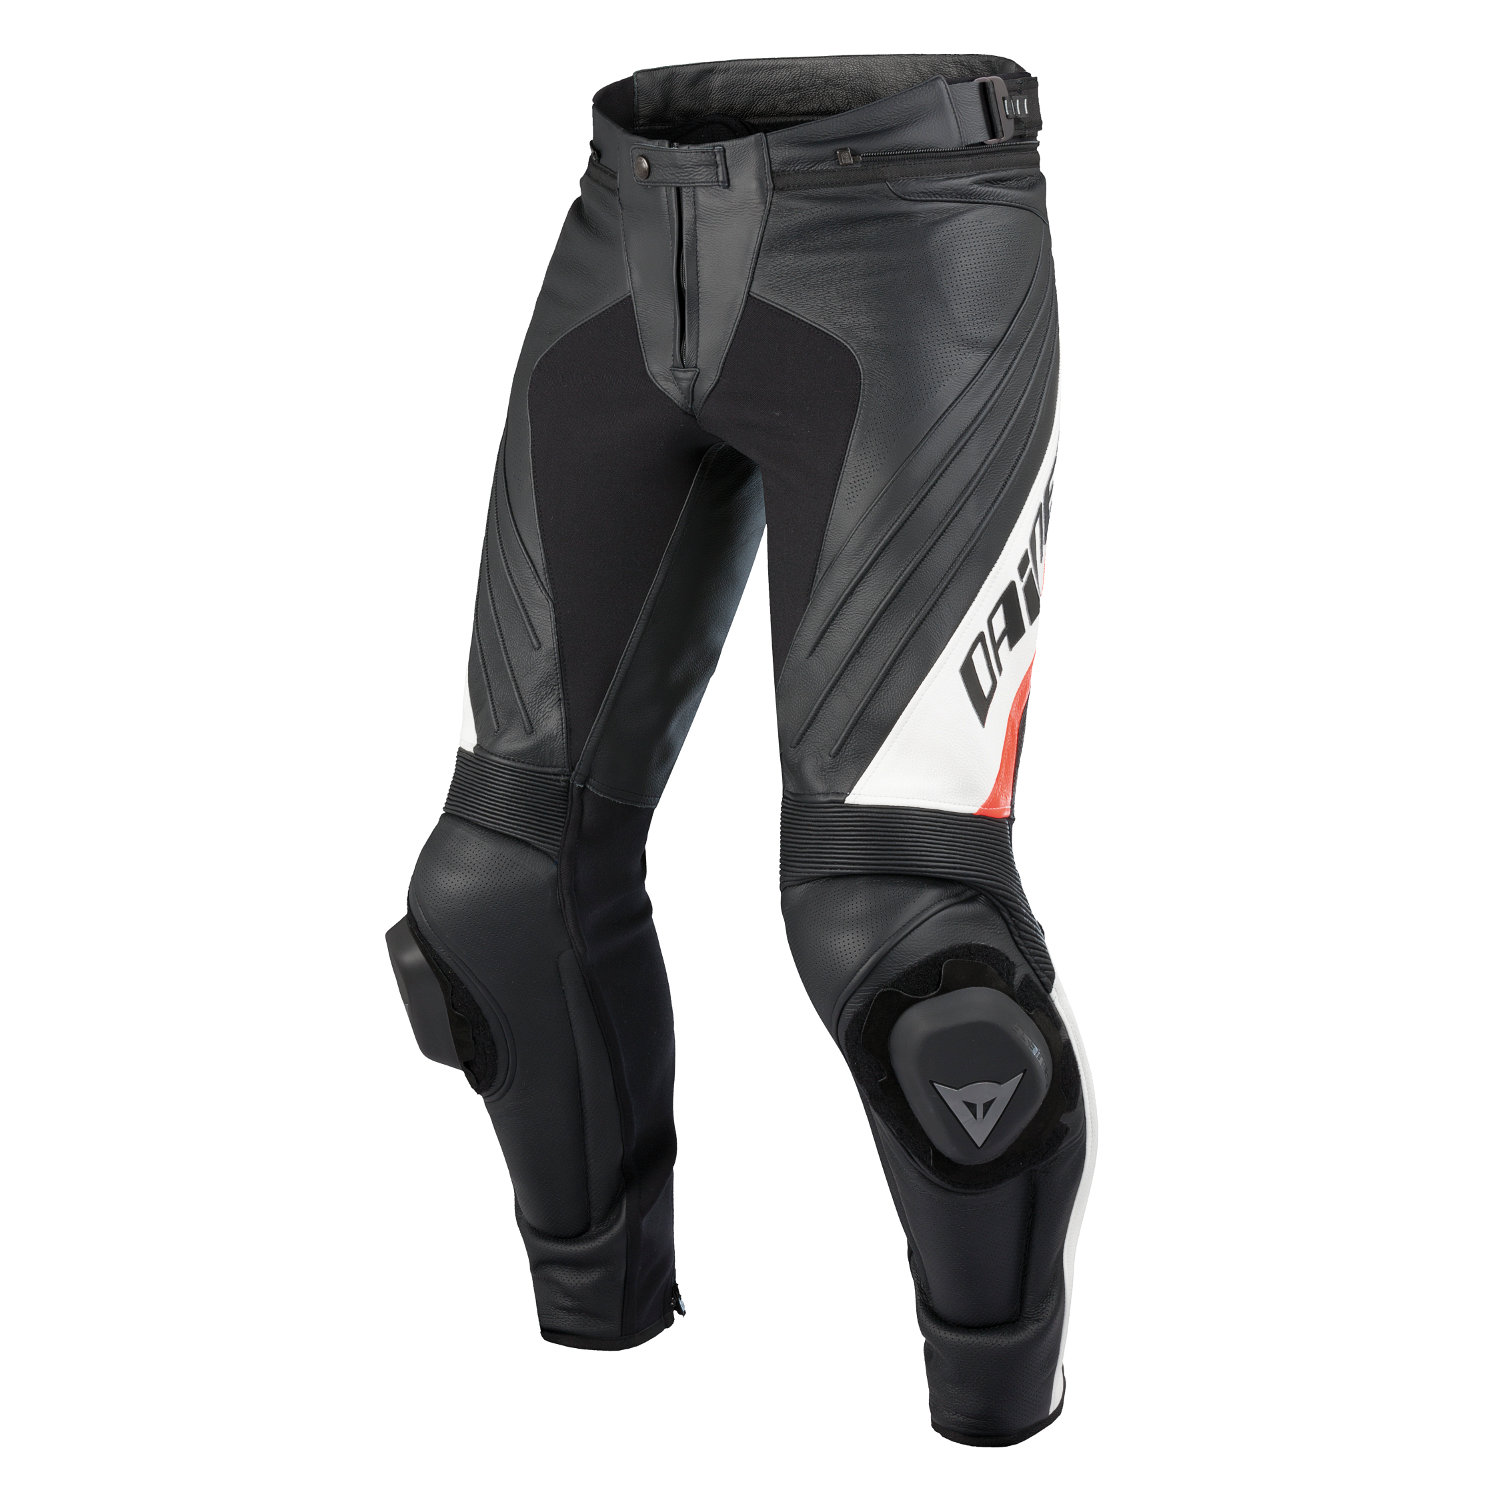 pantalon cuir dainese delta pro evo c2 pelle dainese pantalon cuir moto homme japauto. Black Bedroom Furniture Sets. Home Design Ideas